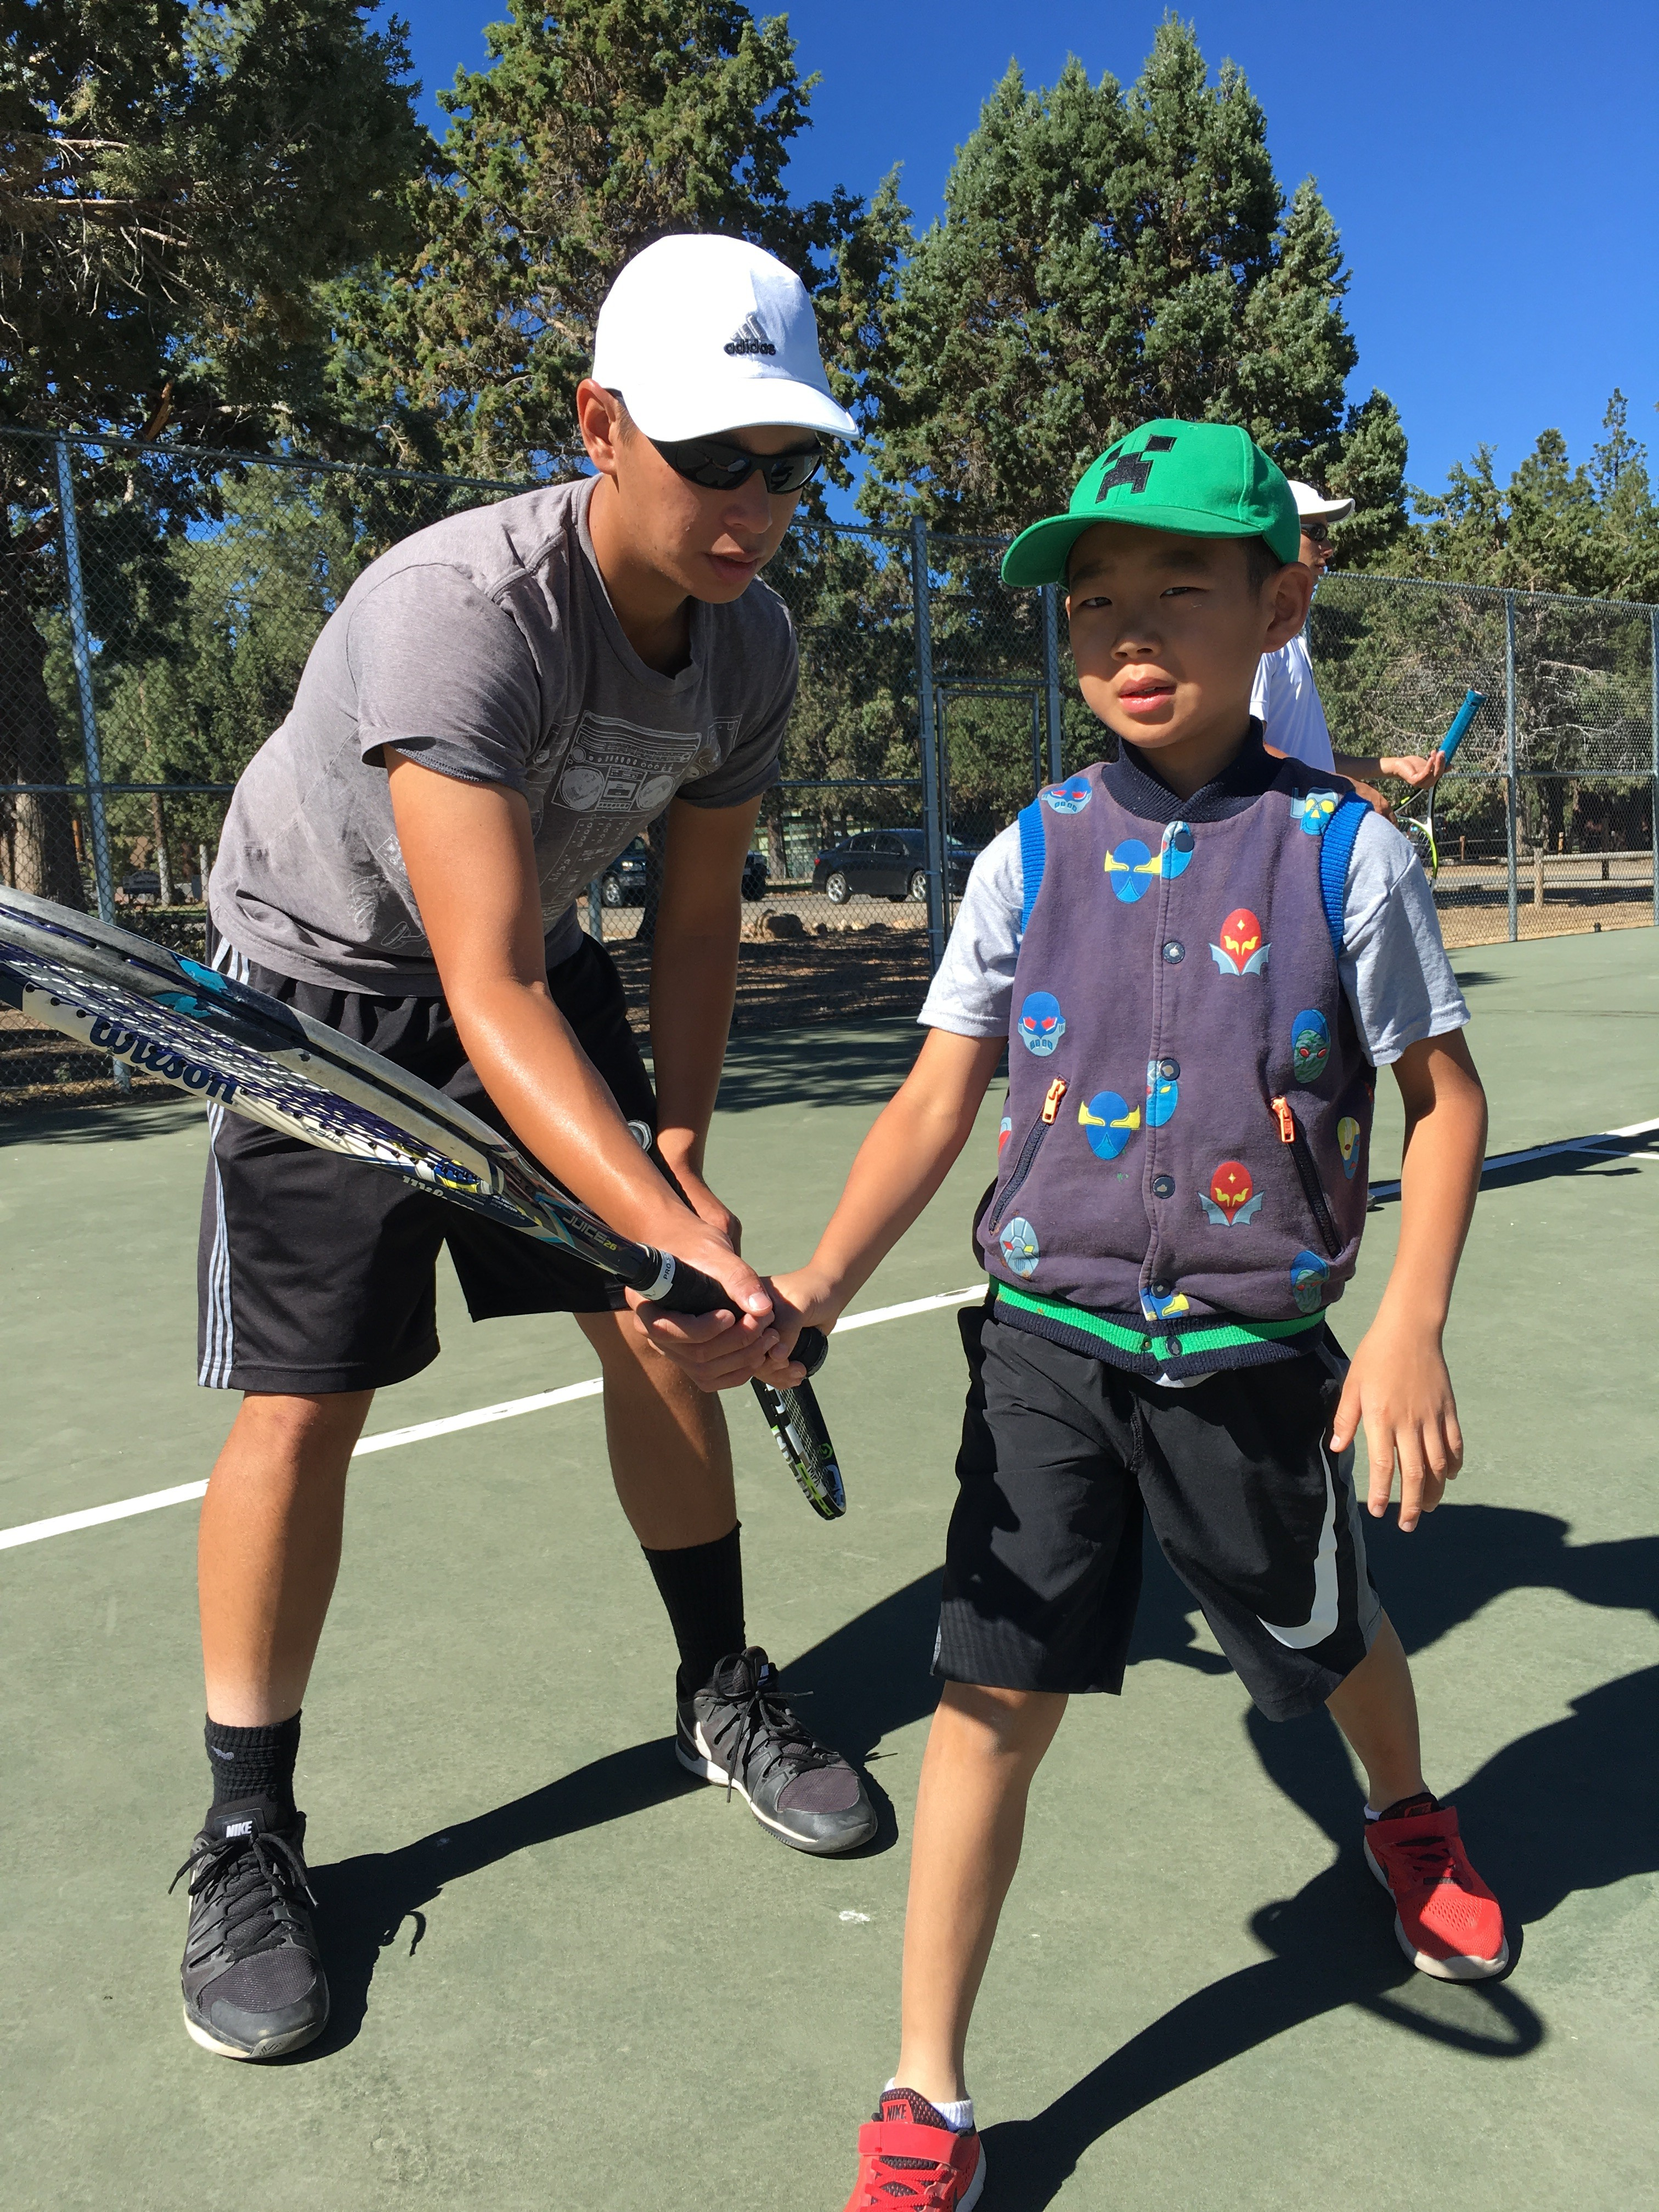 4 Things You'll Learn at Tennis Camp This Summer